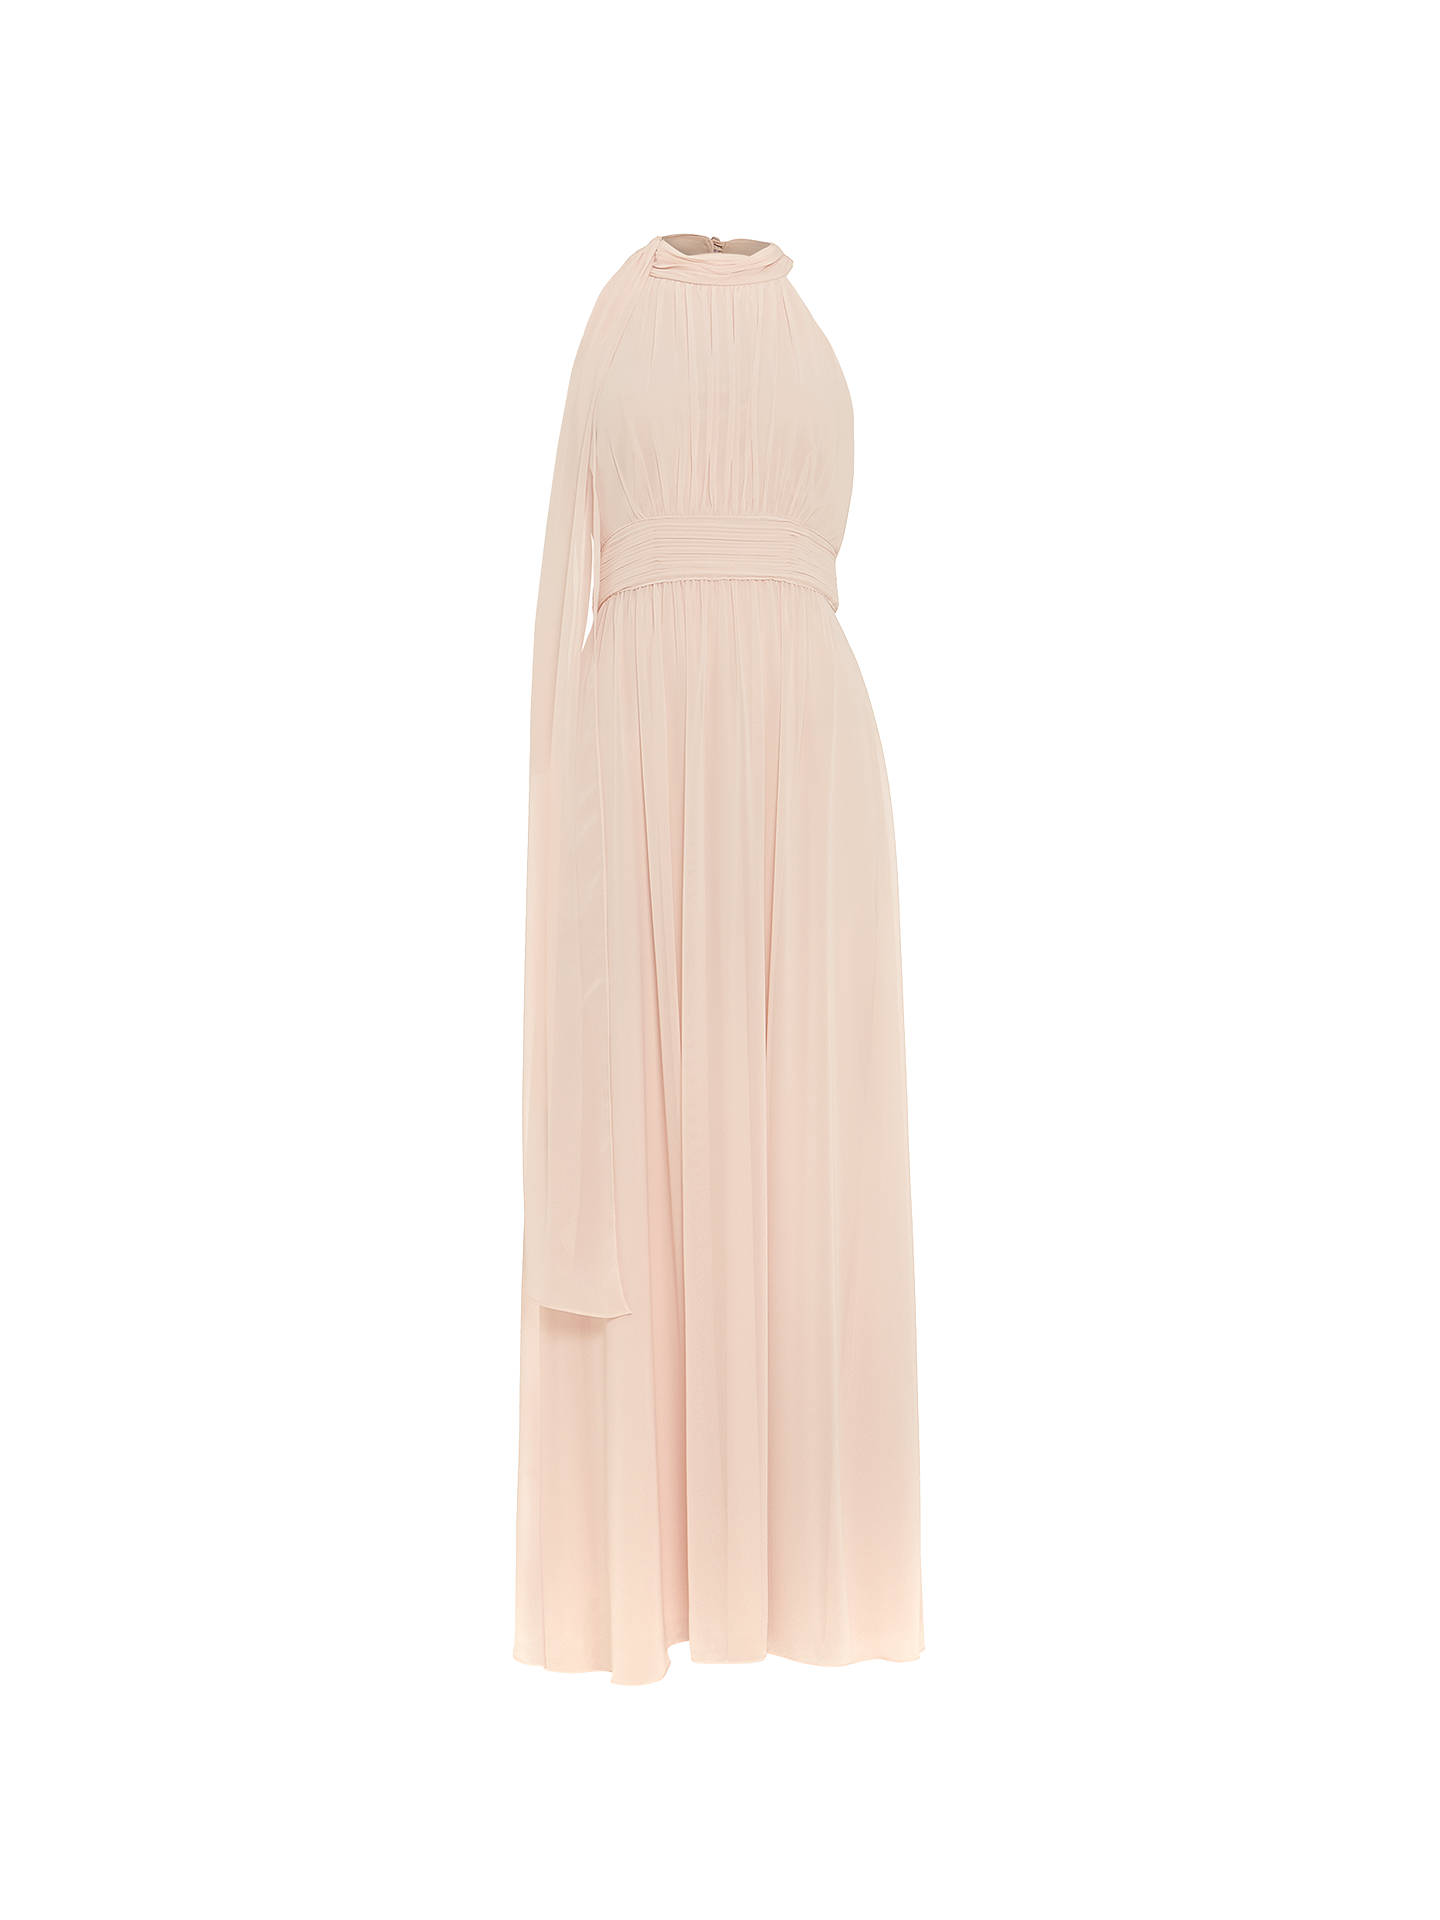 BuyPhase Eight Roxi Halterneck Maxi Dress, Pale Lipstick, 14 Online at johnlewis.com